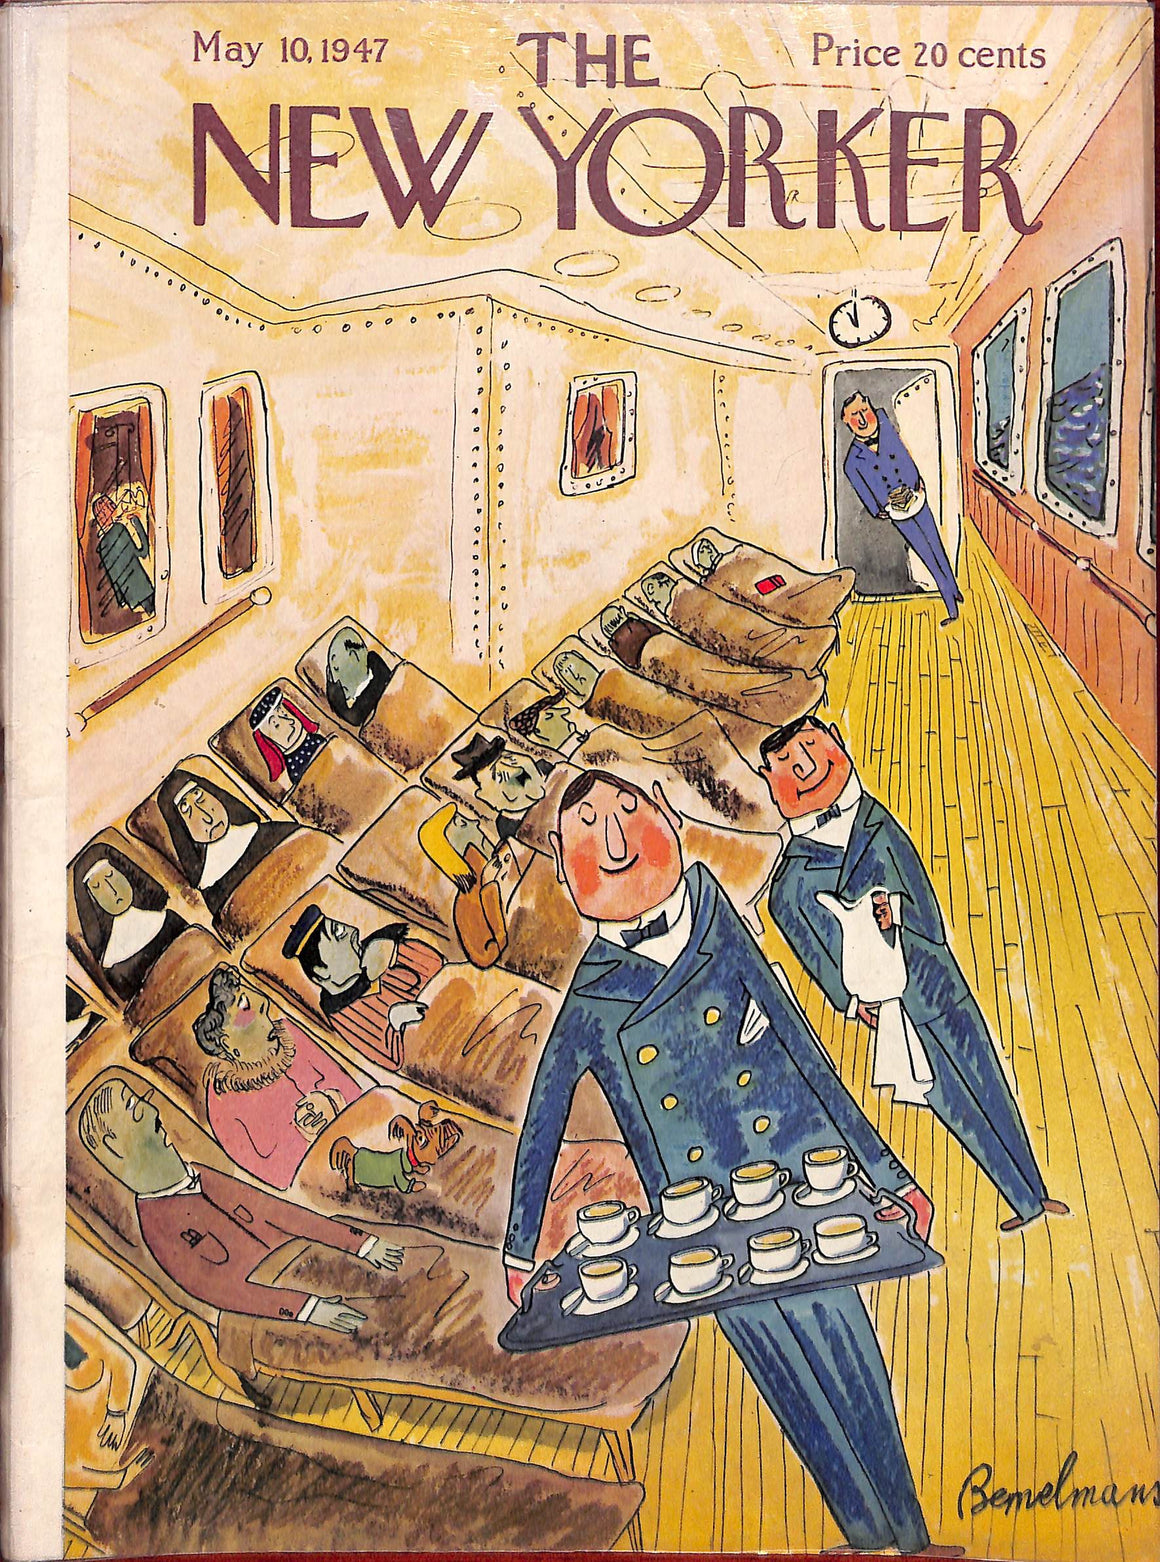 The New Yorker May 10, 1947